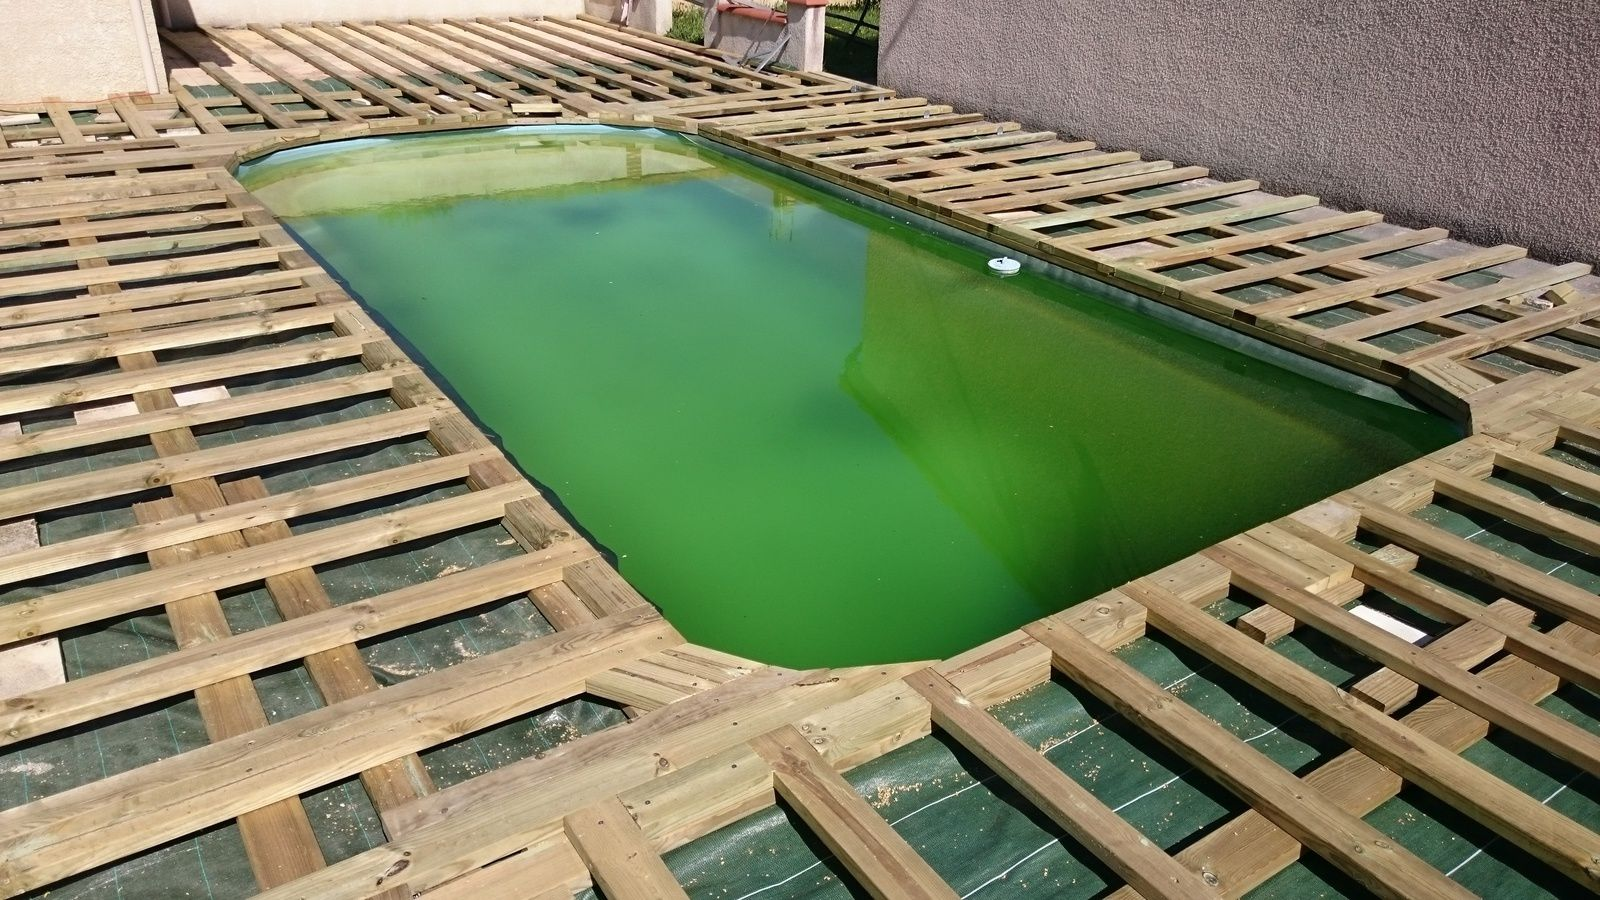 Projet terrasse piscine composite r novation et for Terrasse piscine composite